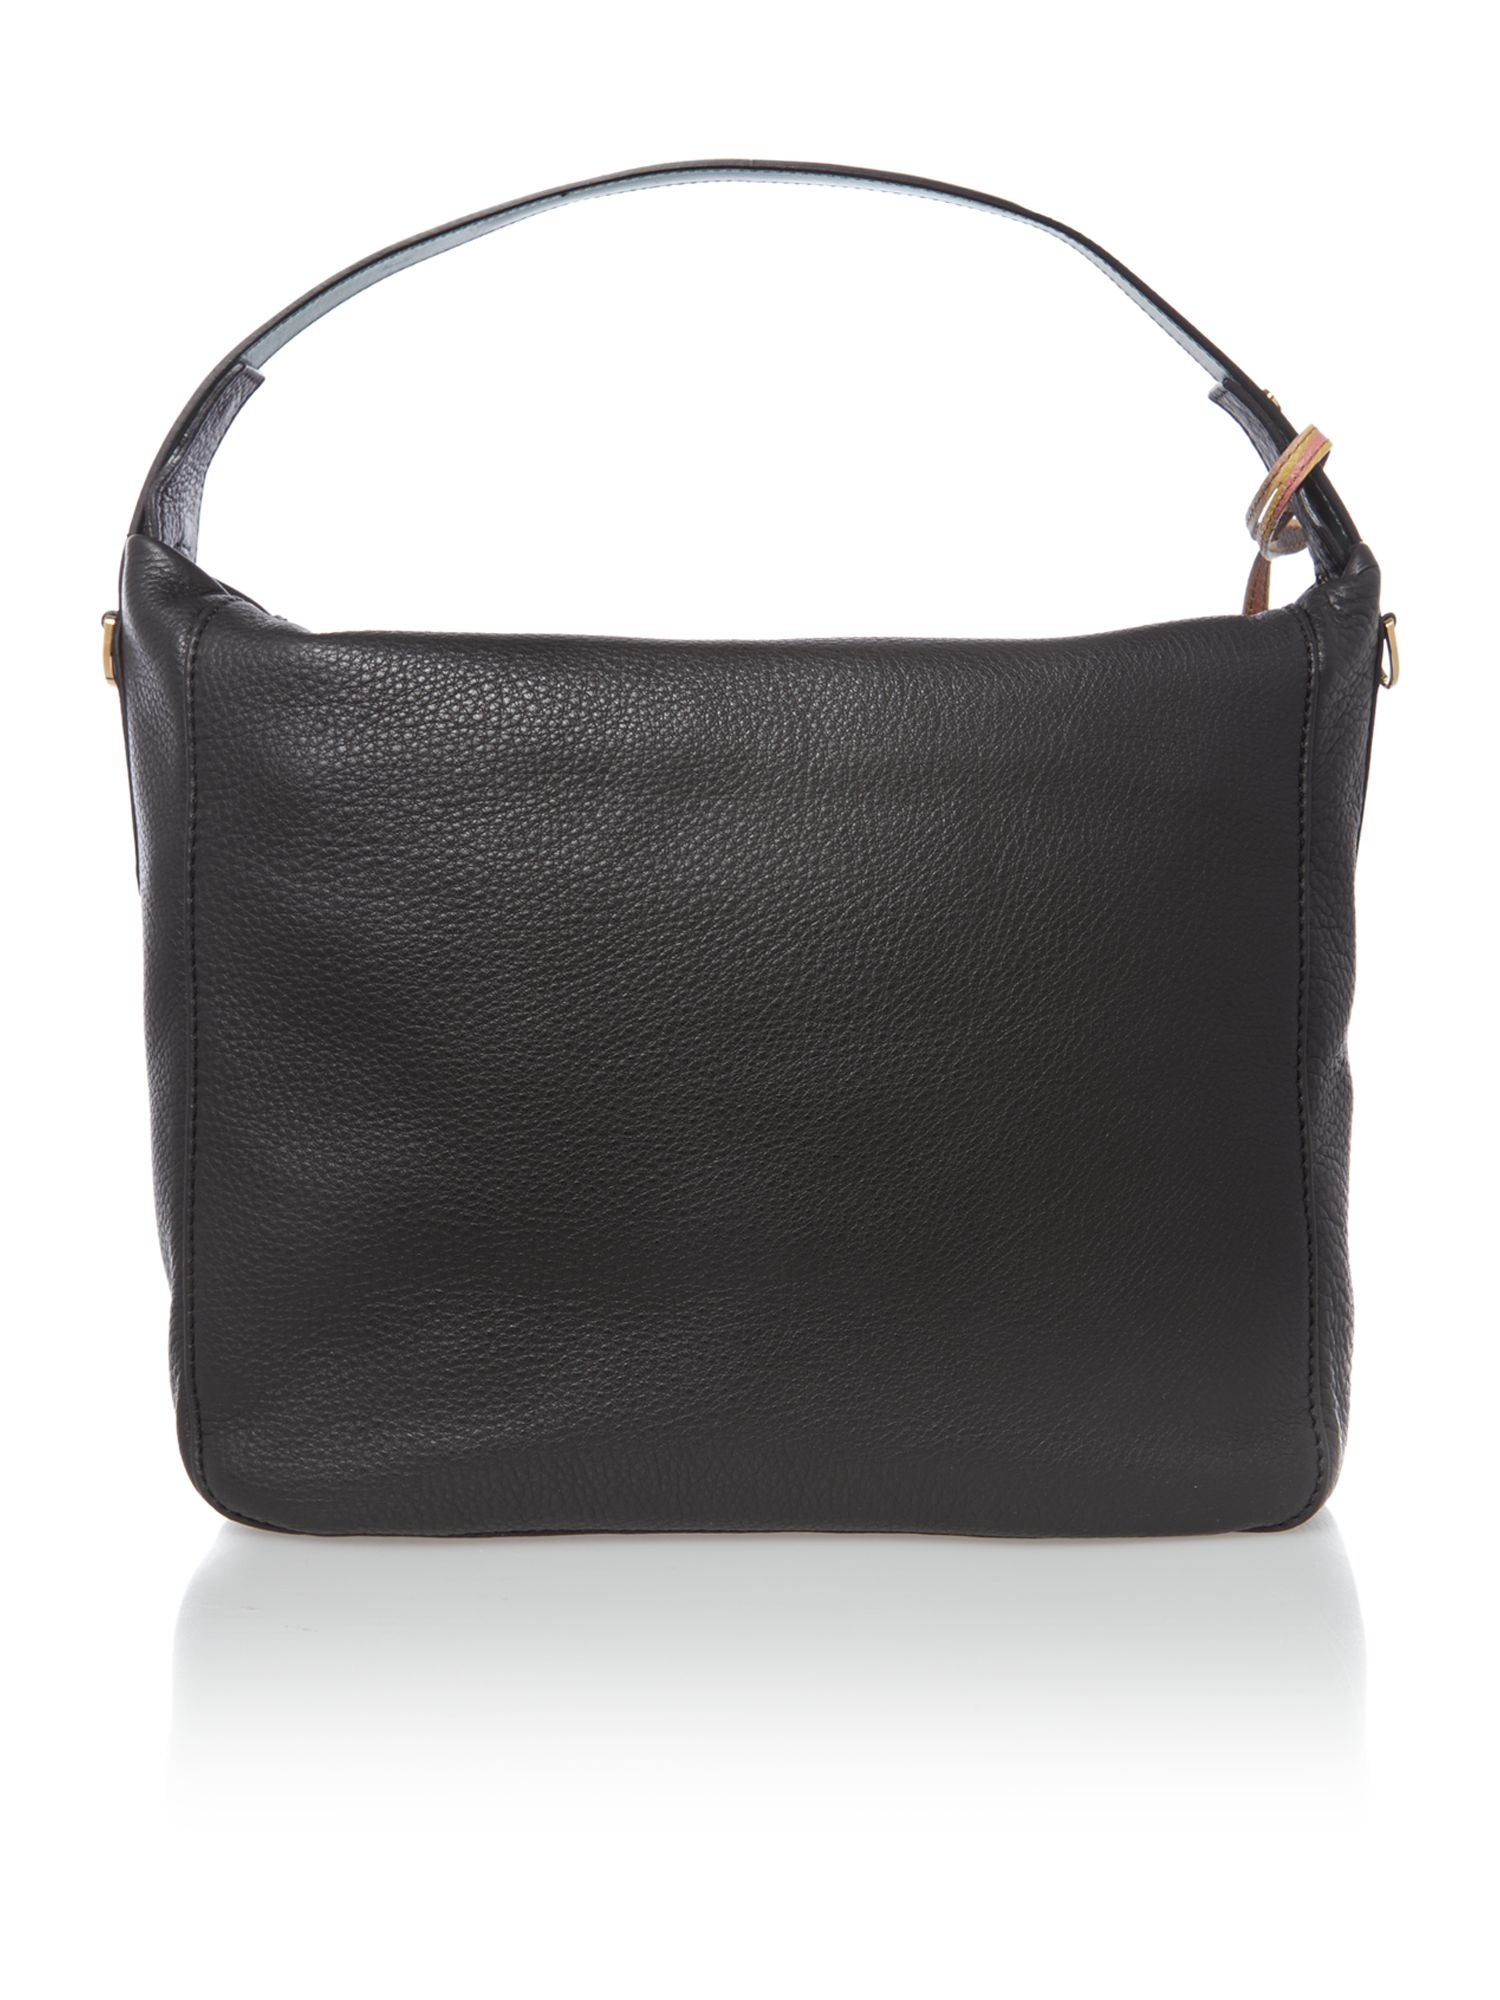 Albermarle black medium hobo bag